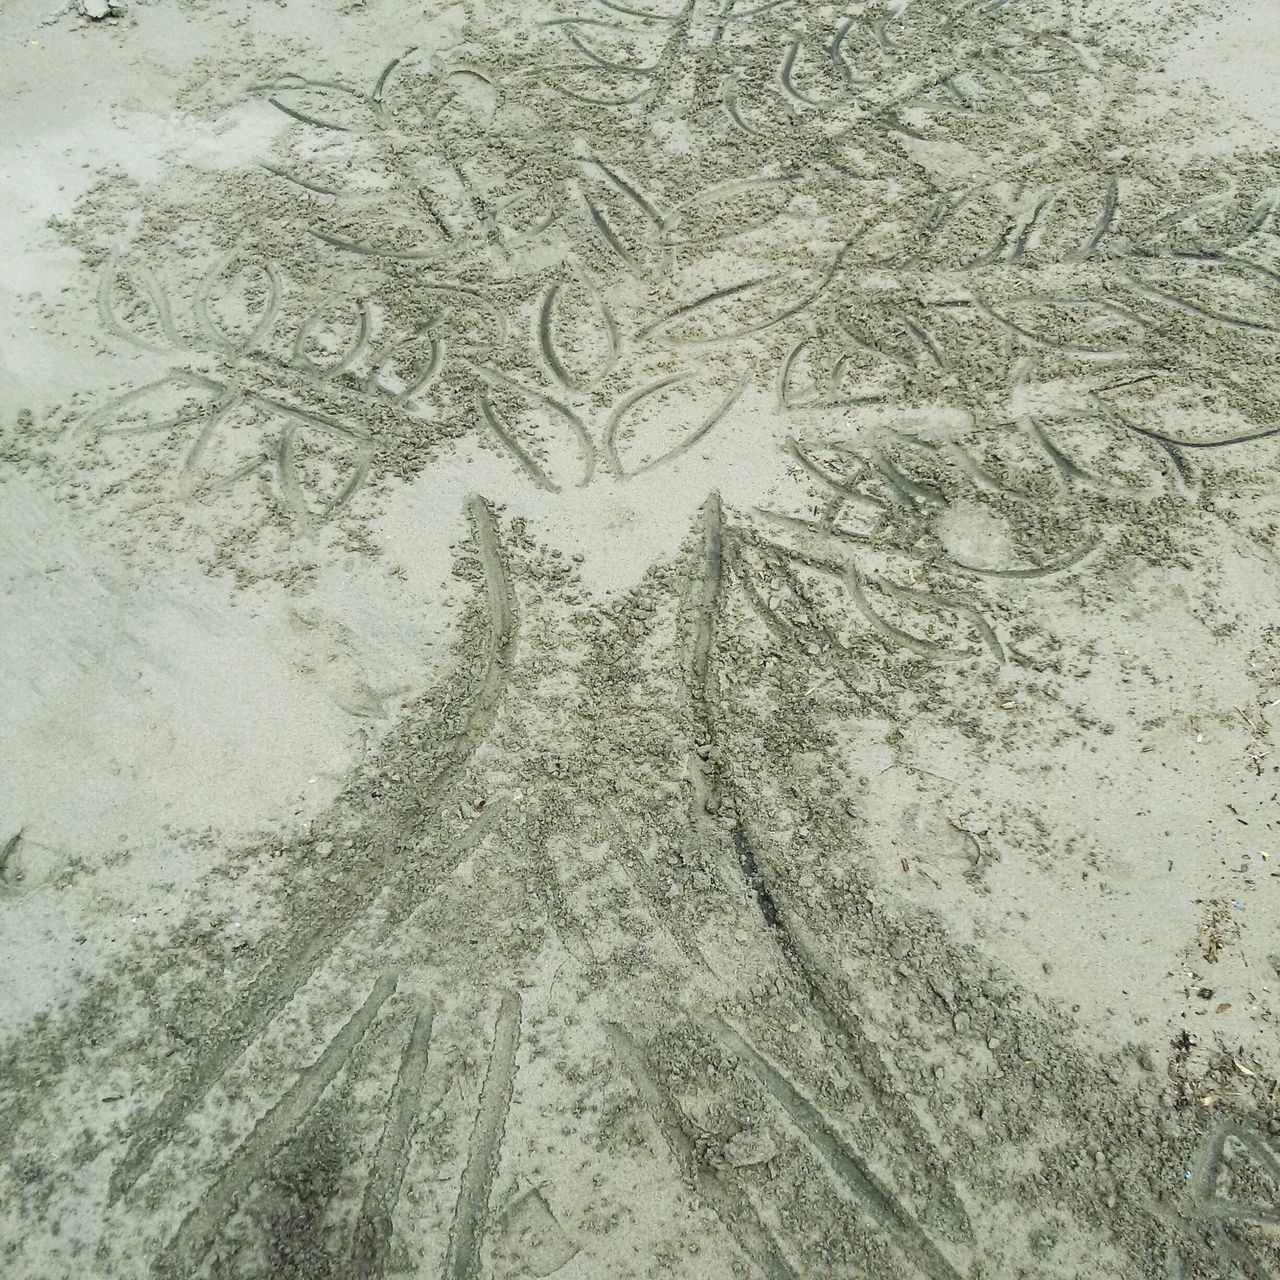 High Angle View Of Tree Drawing On Sand At Beach